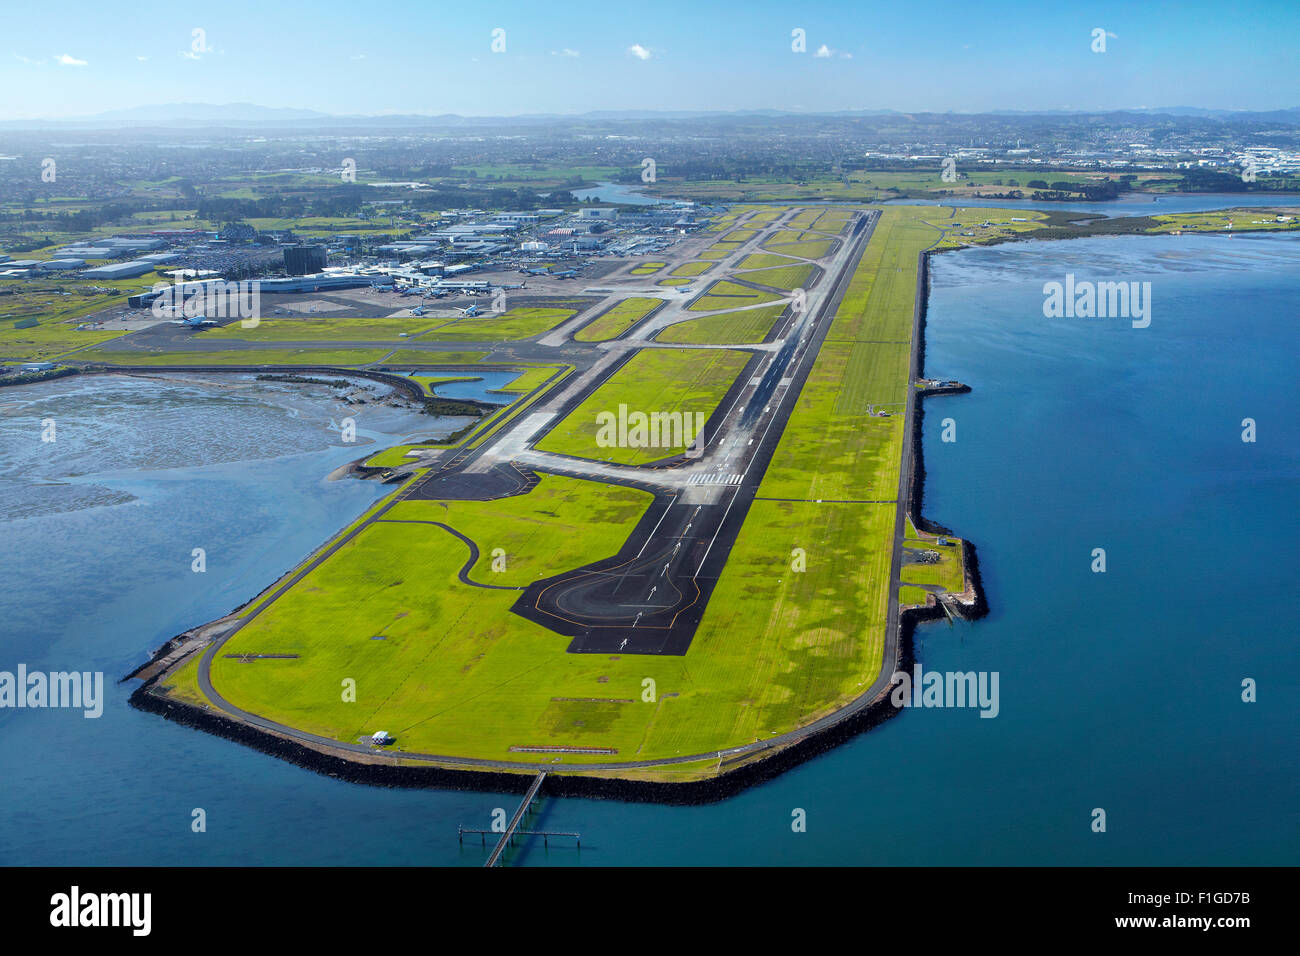 Main runway at Auckland Airport, and Manukau Harbour, Auckland, North Island, New Zealand - aerial - Stock Image